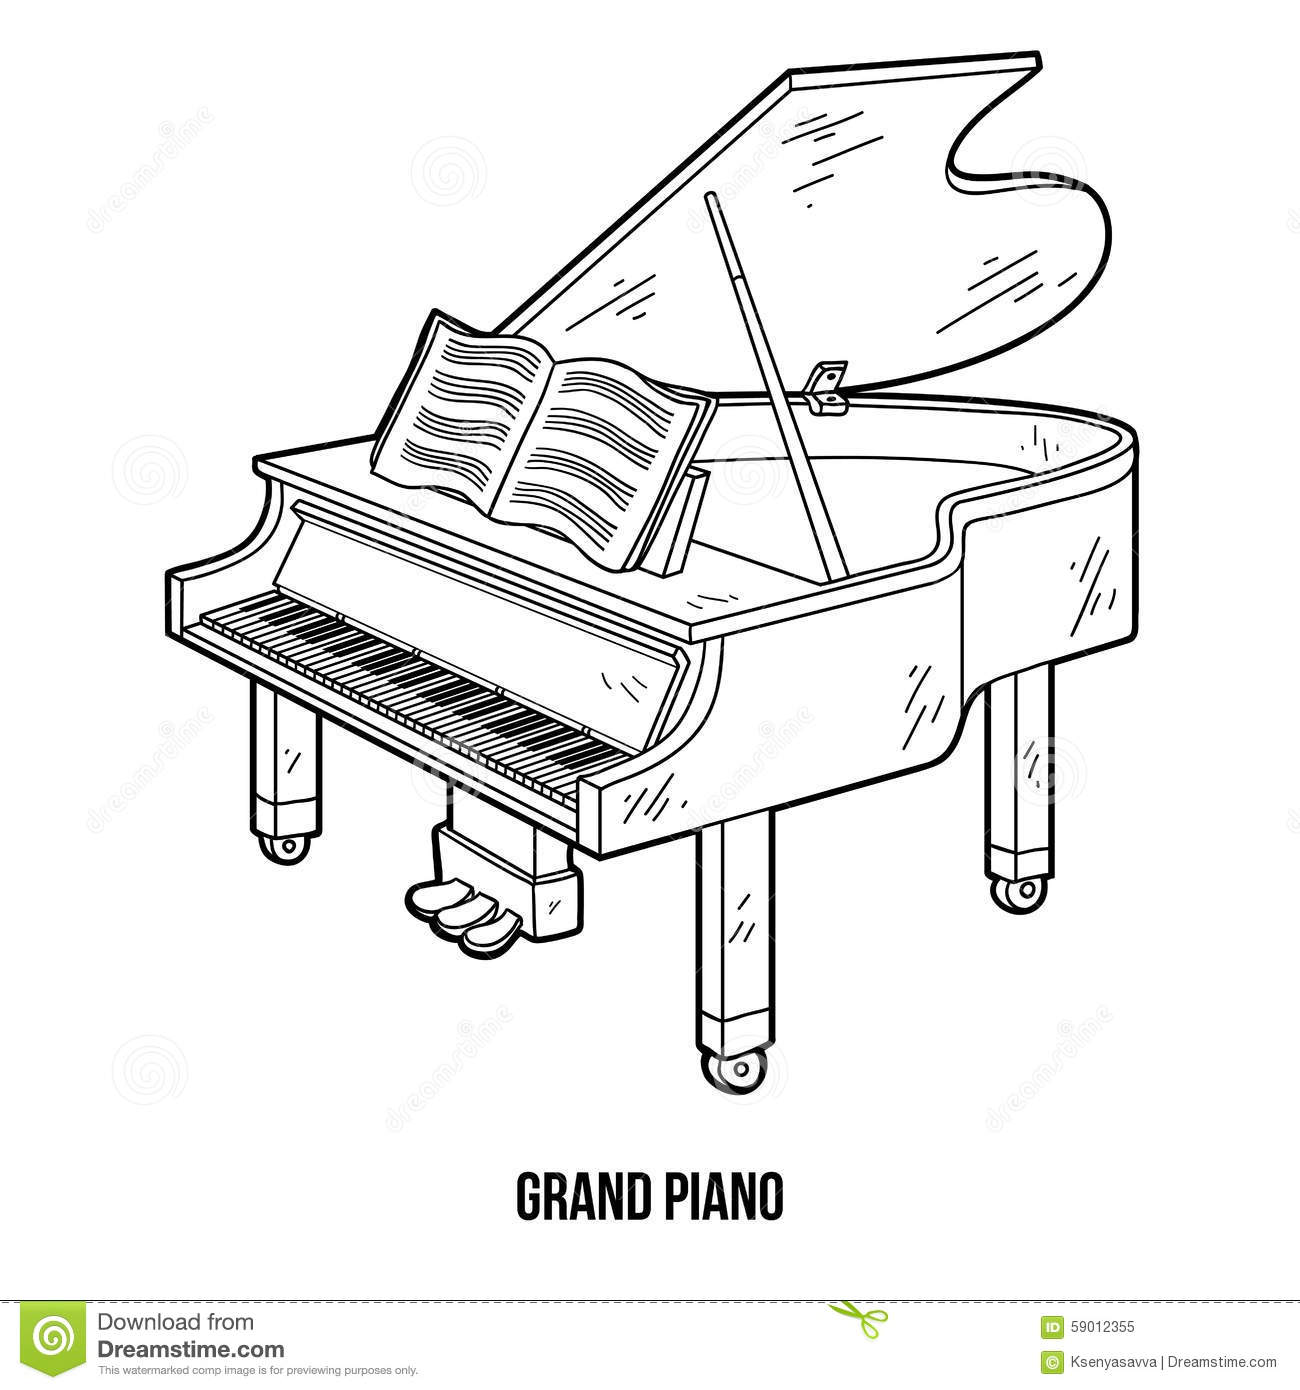 Livre de coloriage instruments de musique piano queue illustration de vecteur image - Coloriage piano ...